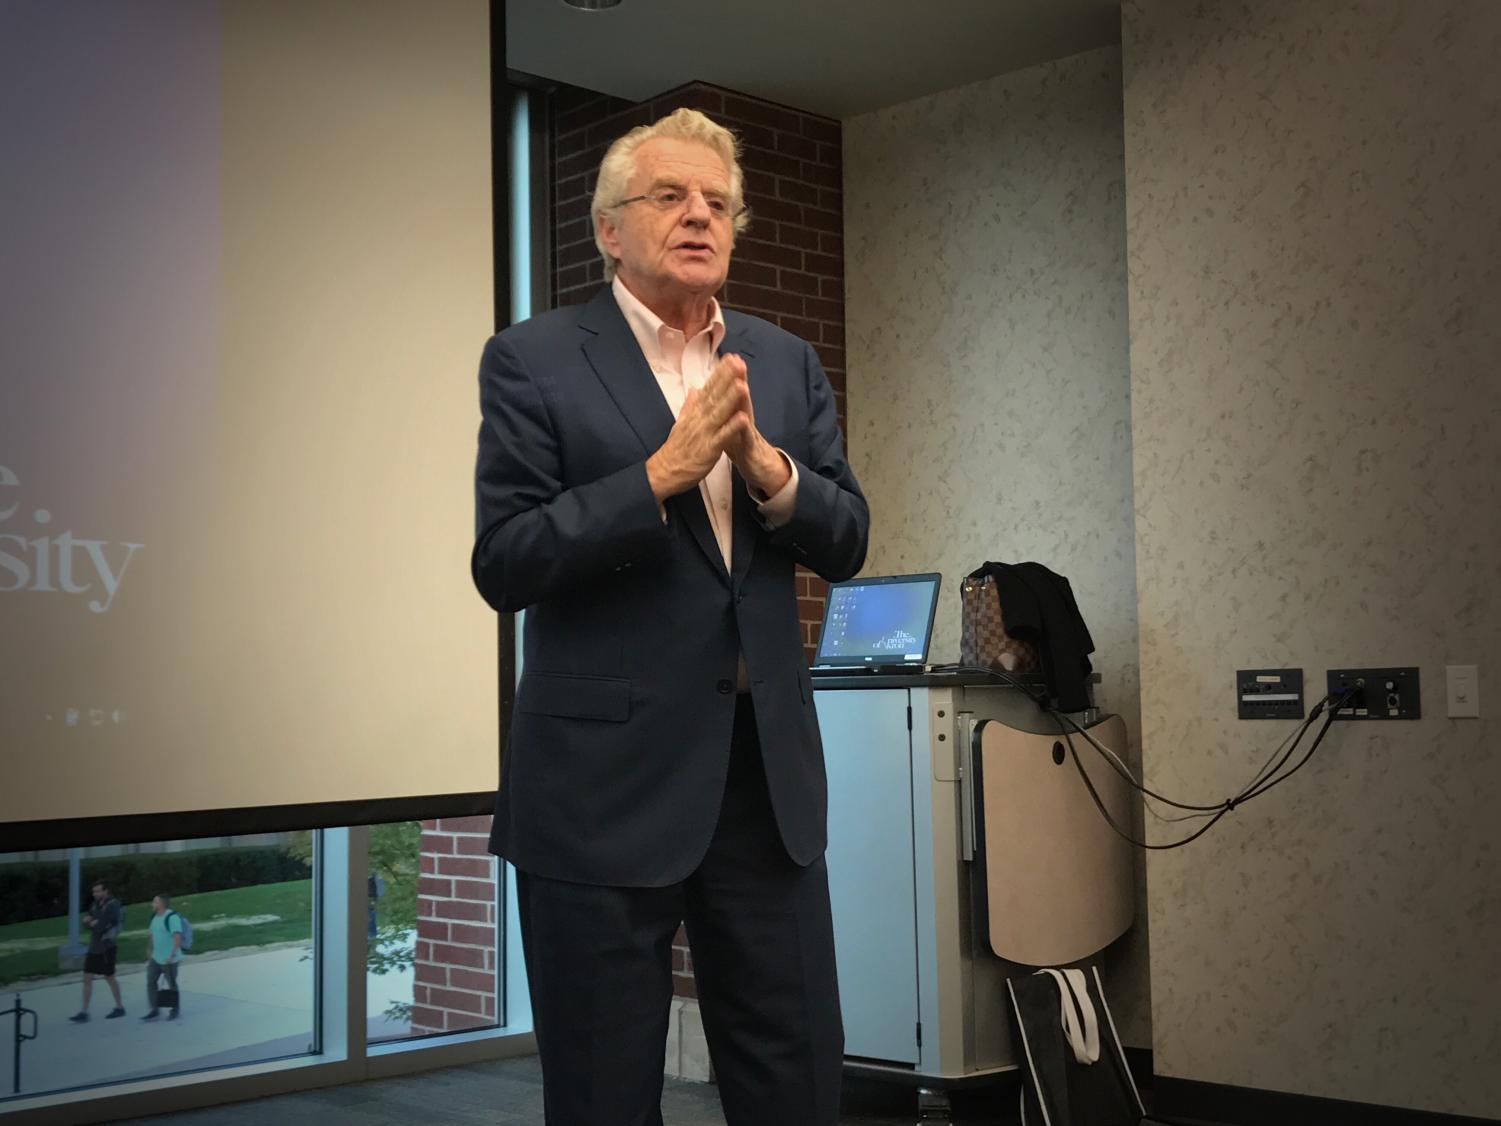 Jerry Springer speaks to University of Akron students, community members and fans at the Taber Student Union.